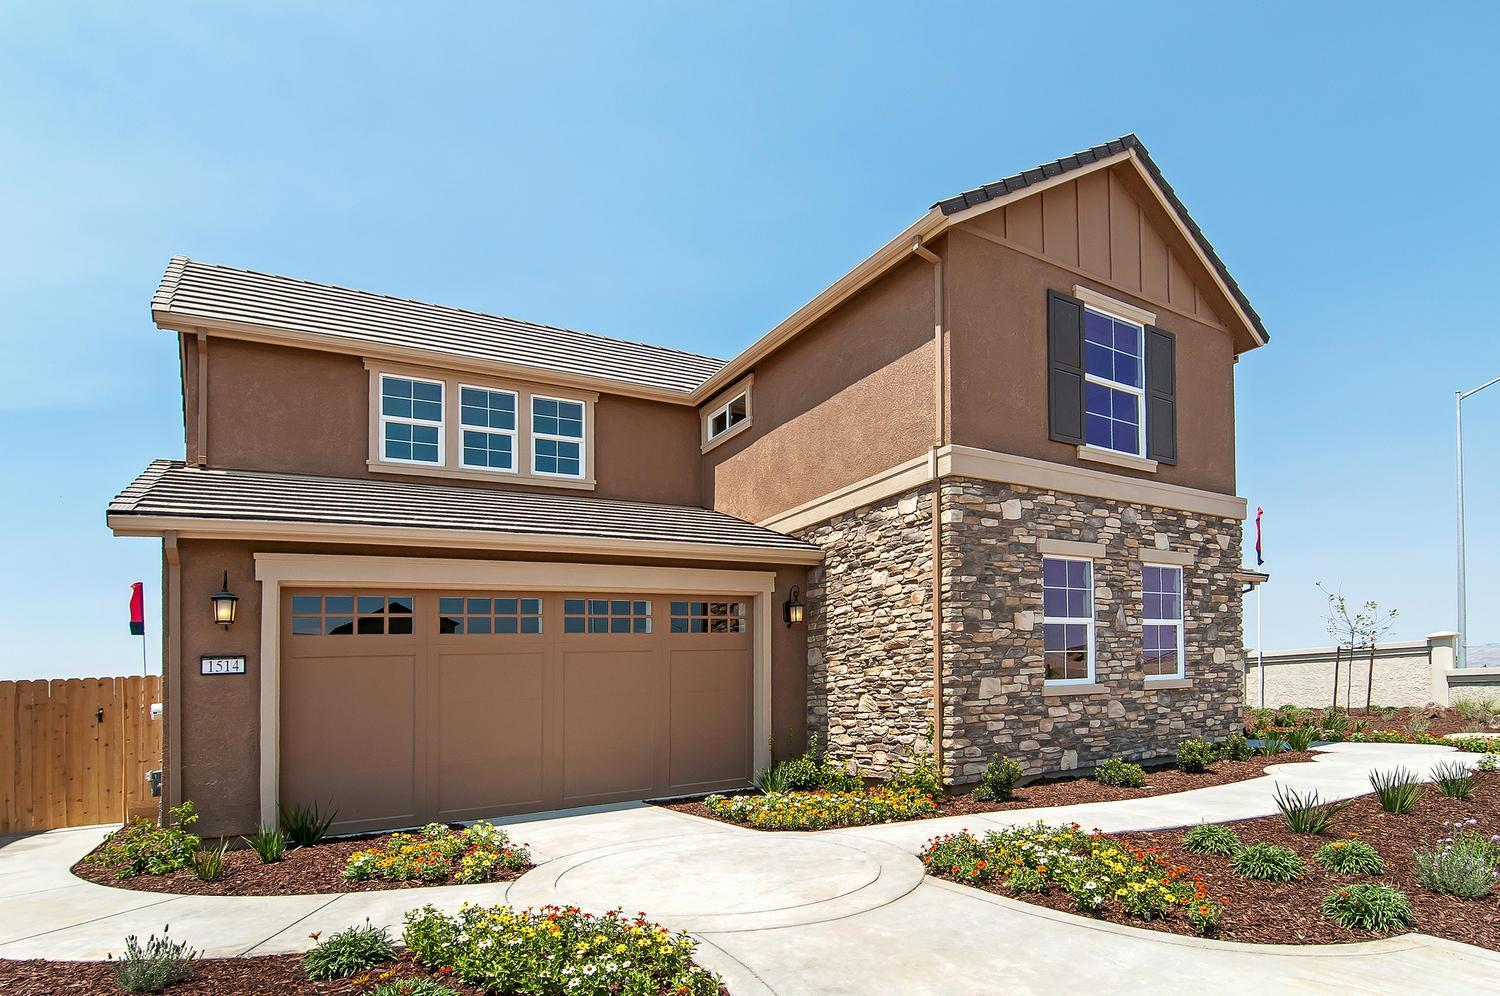 Single Family for Active at Serenity - Residence 7 1534 Santana Ranch Drive Hollister, California 95023 United States